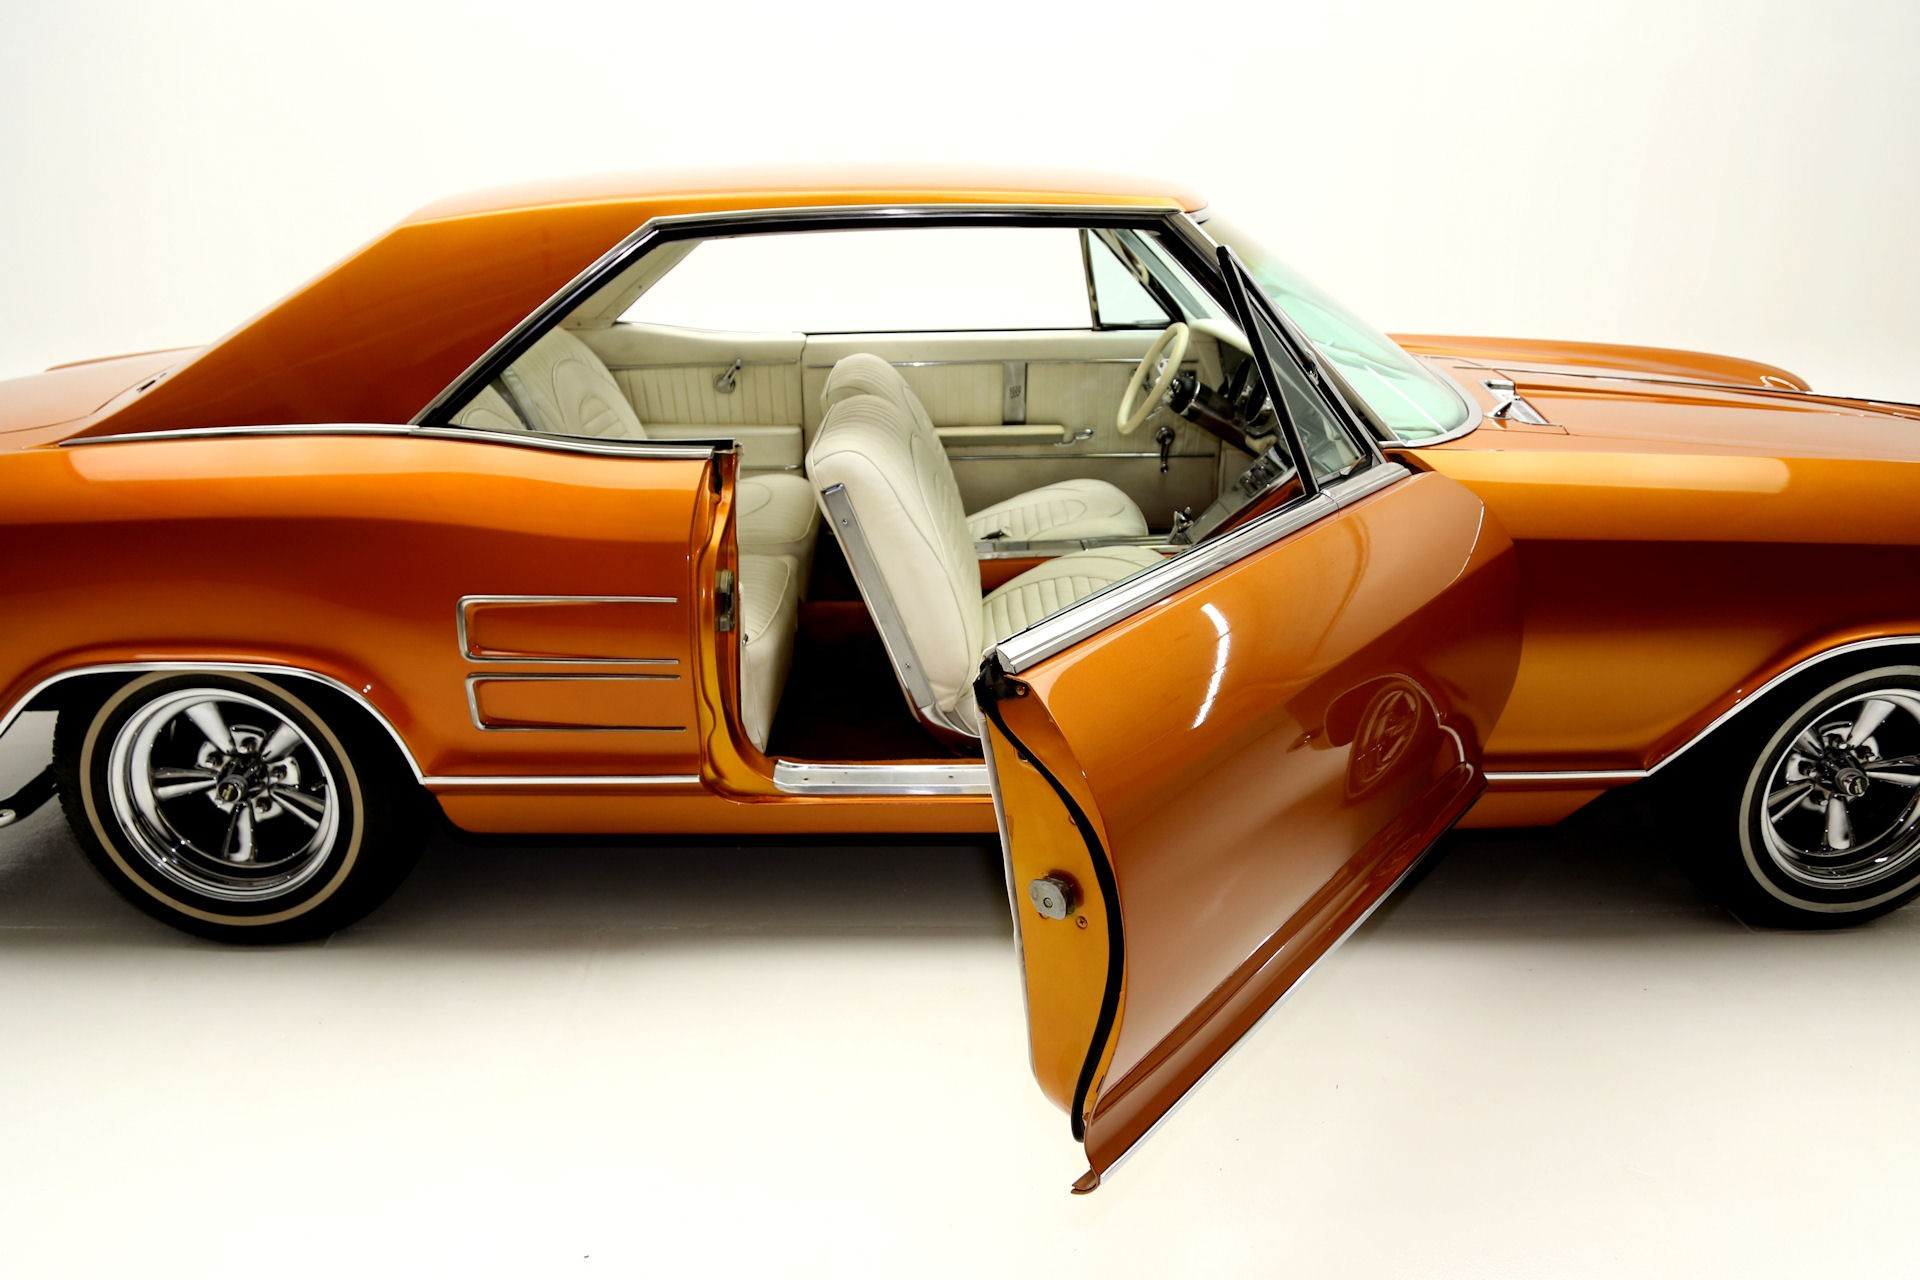 1964 Buick Riviera Was Owned by a Black Eyed Peas Member ...